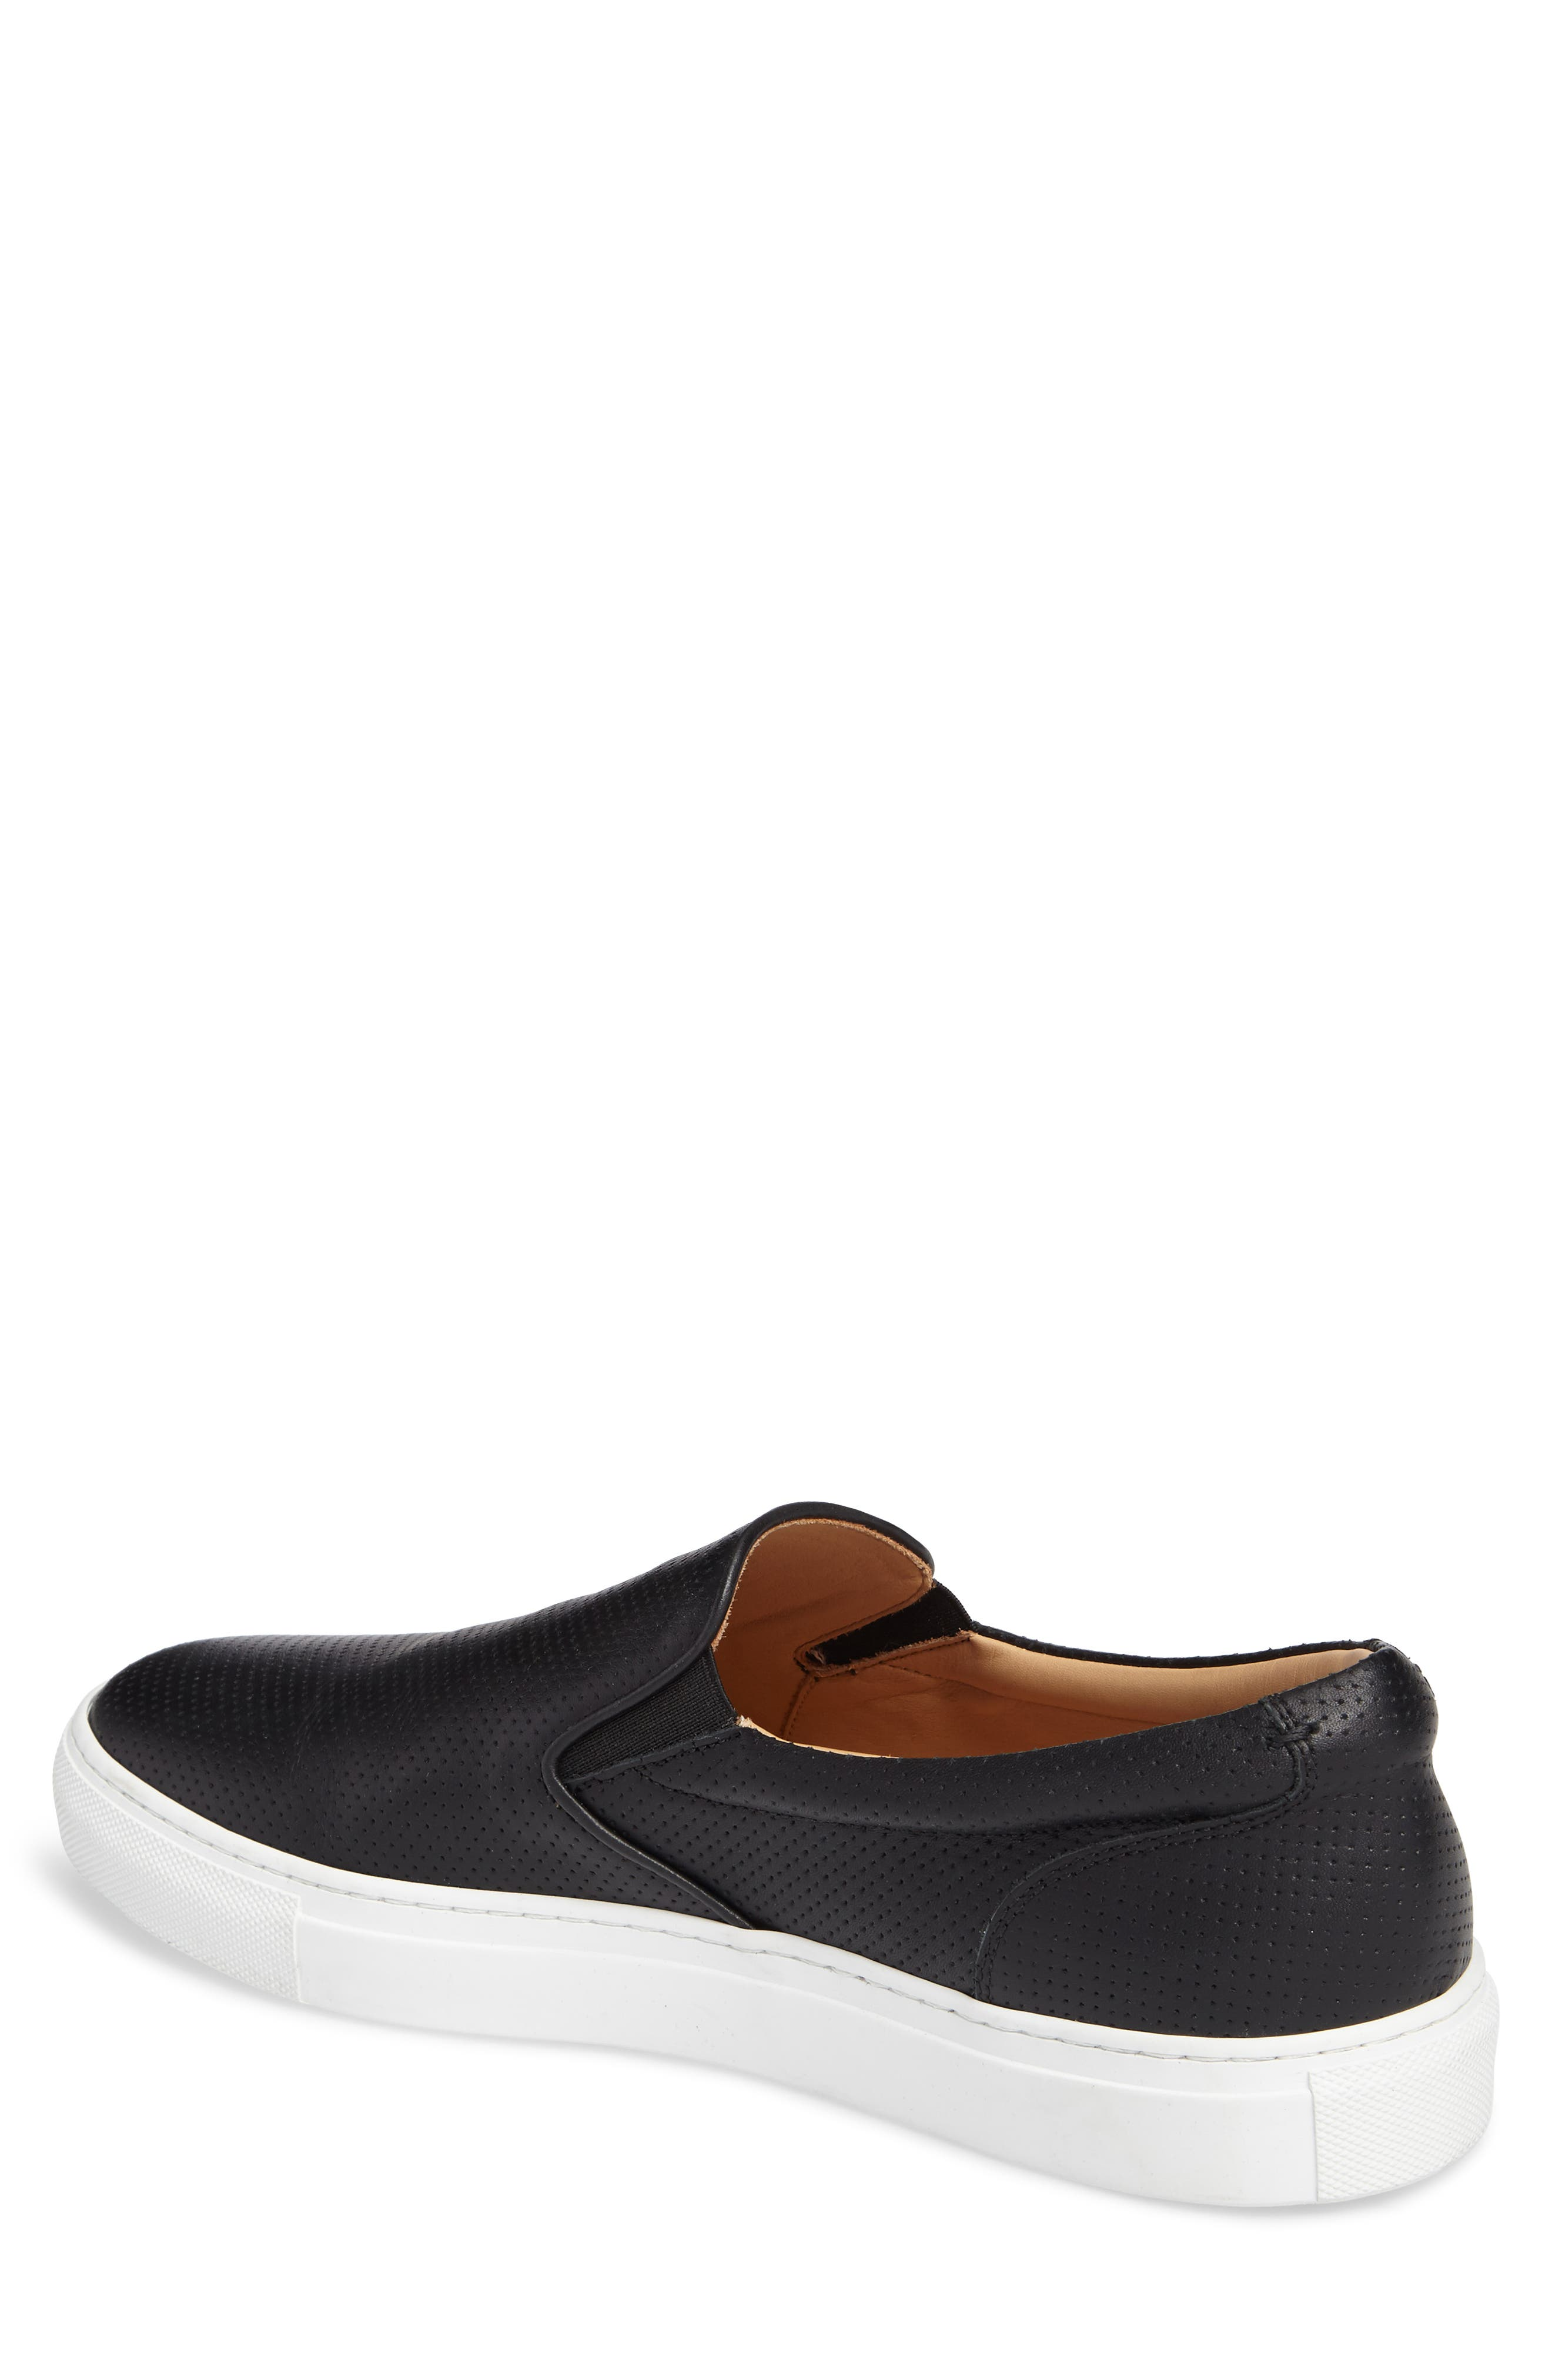 Wooster Slip-On Sneaker,                             Alternate thumbnail 2, color,                             BLACK PERFORATED LEATHER